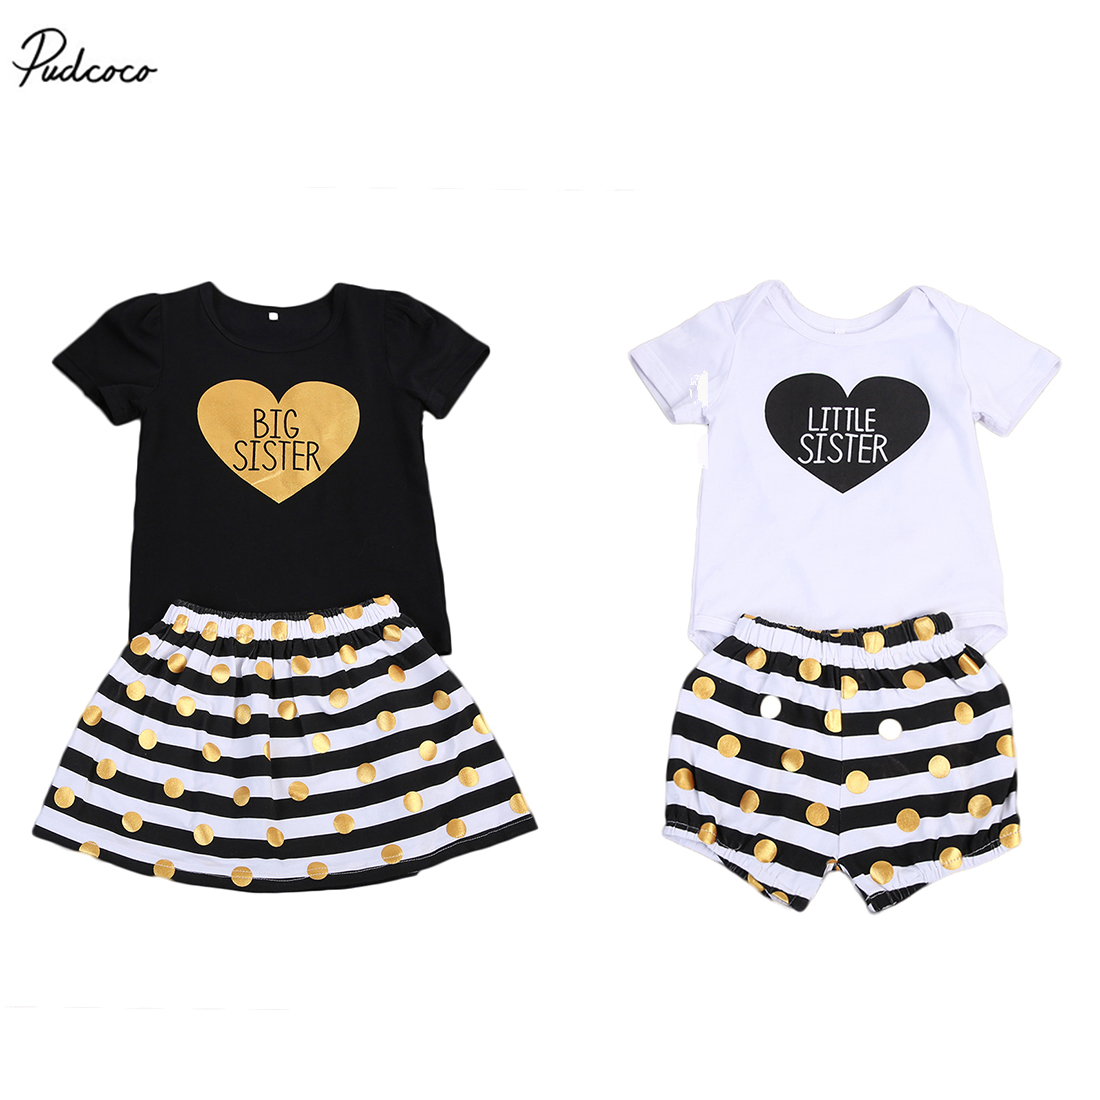 Family Clothing Kids Baby Girls Heart Little Sister Romper Pants Big Sister Short Sleeve T-shirt Polka Dot Dress Outfits Set